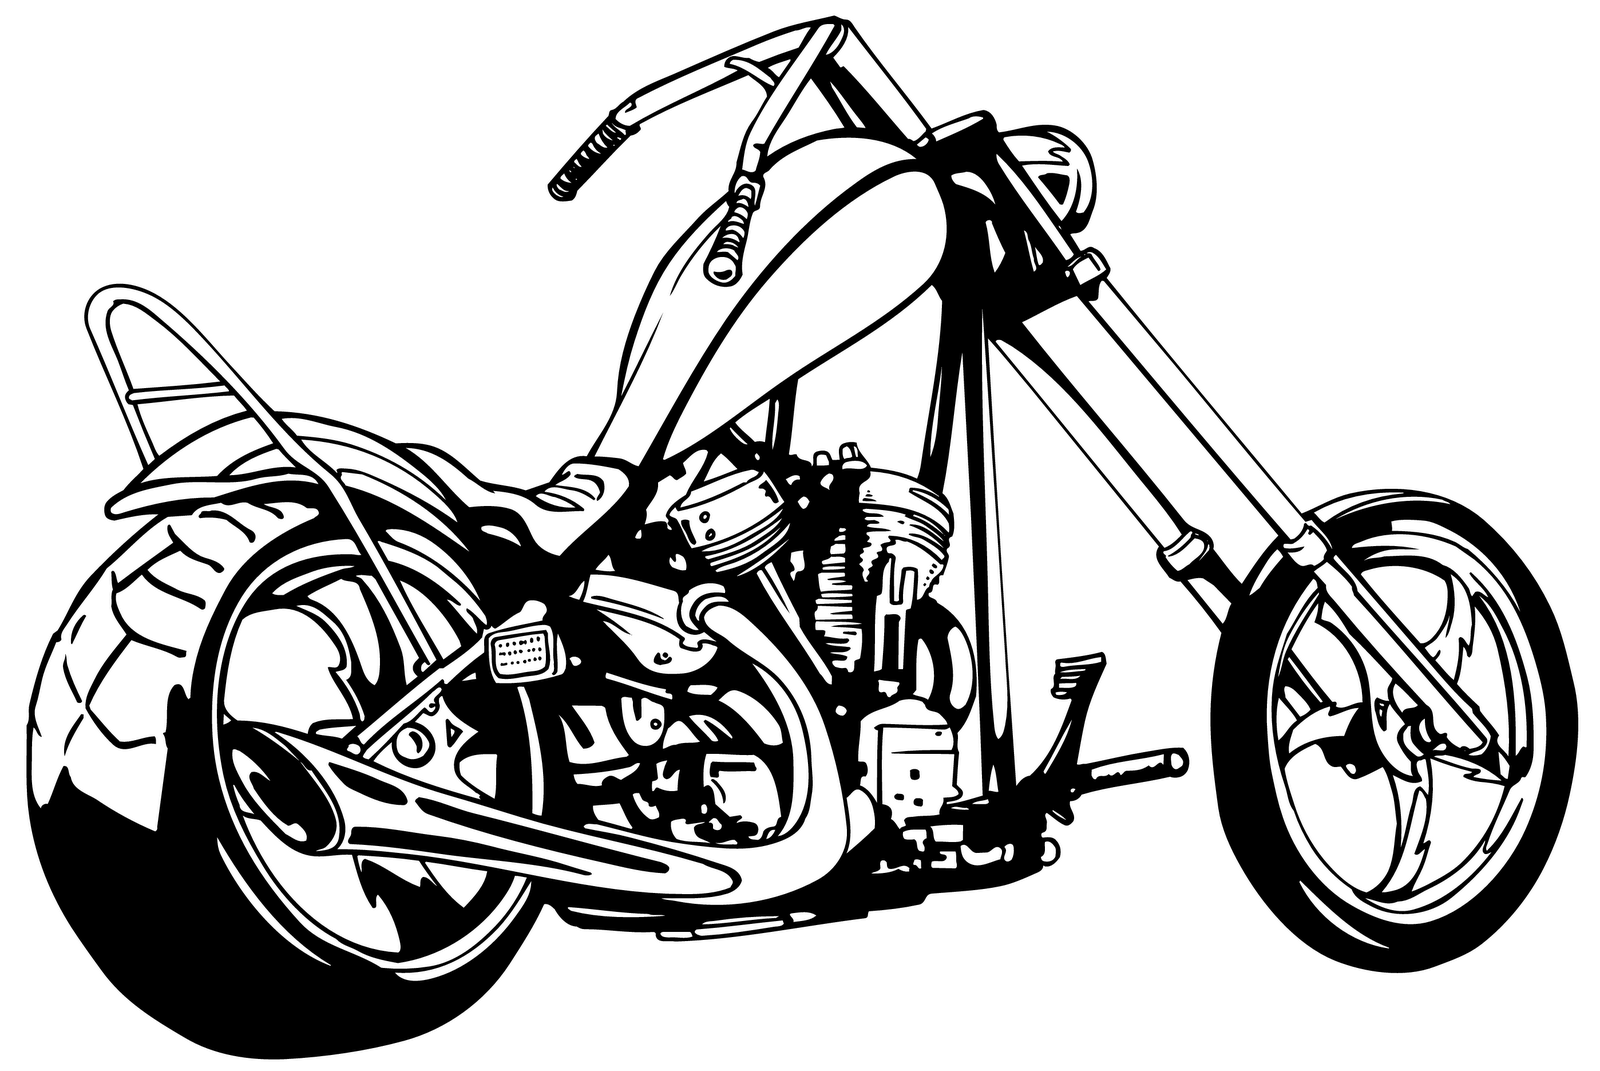 Vintage Motorcycle Clipart Black And Whi-Vintage Motorcycle Clipart Black And White Clipart Panda Free-19